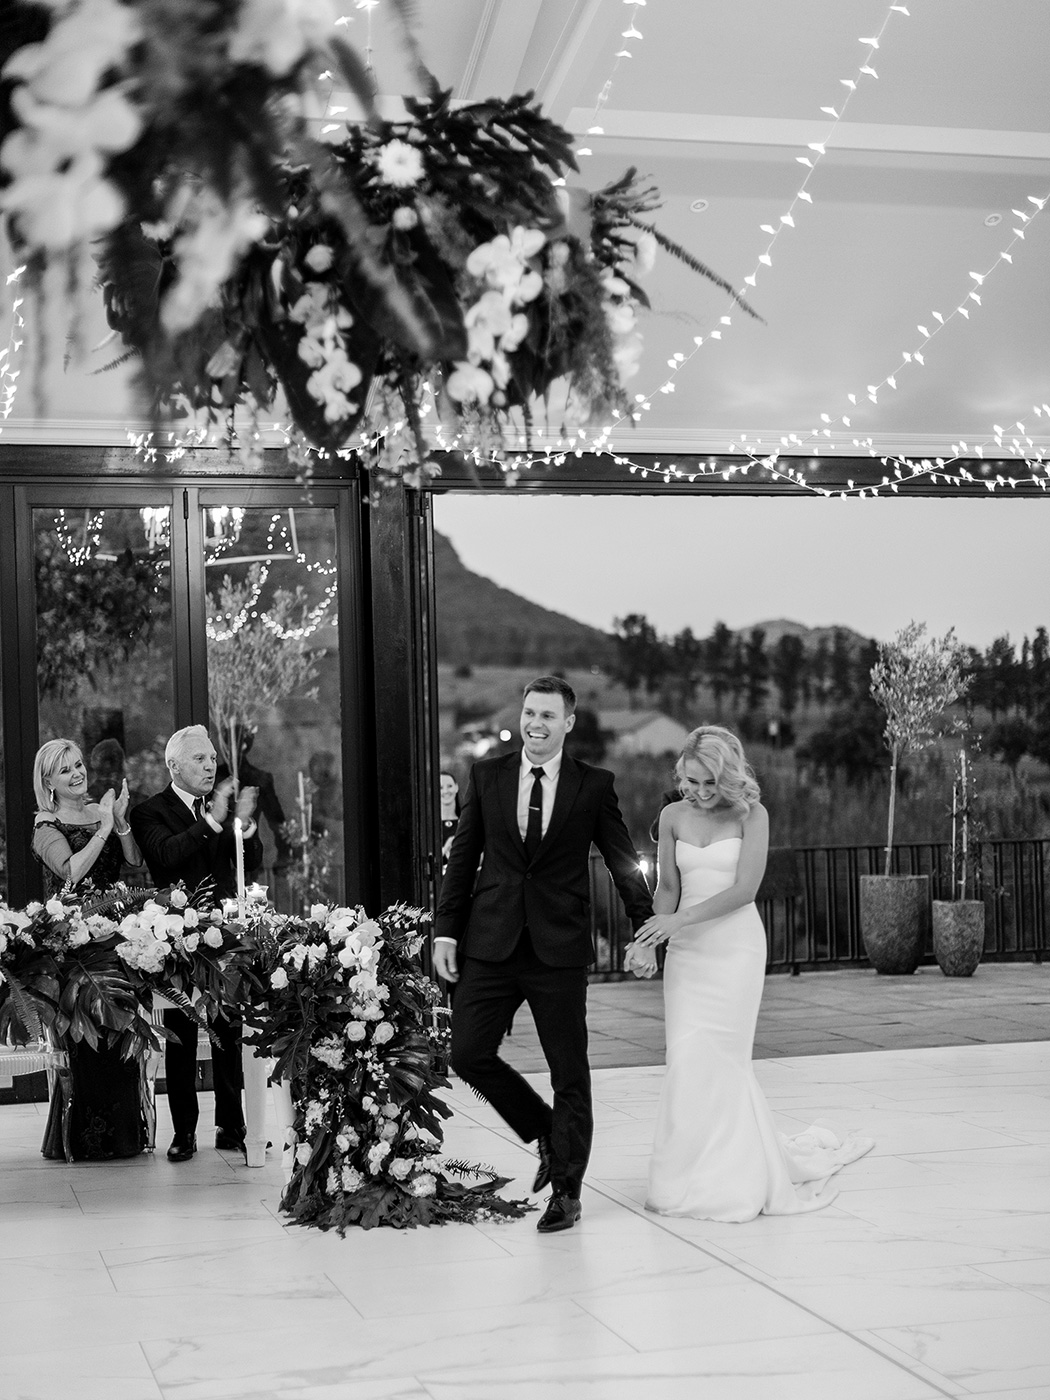 Bride & Groom Entrance | Rensche Mari